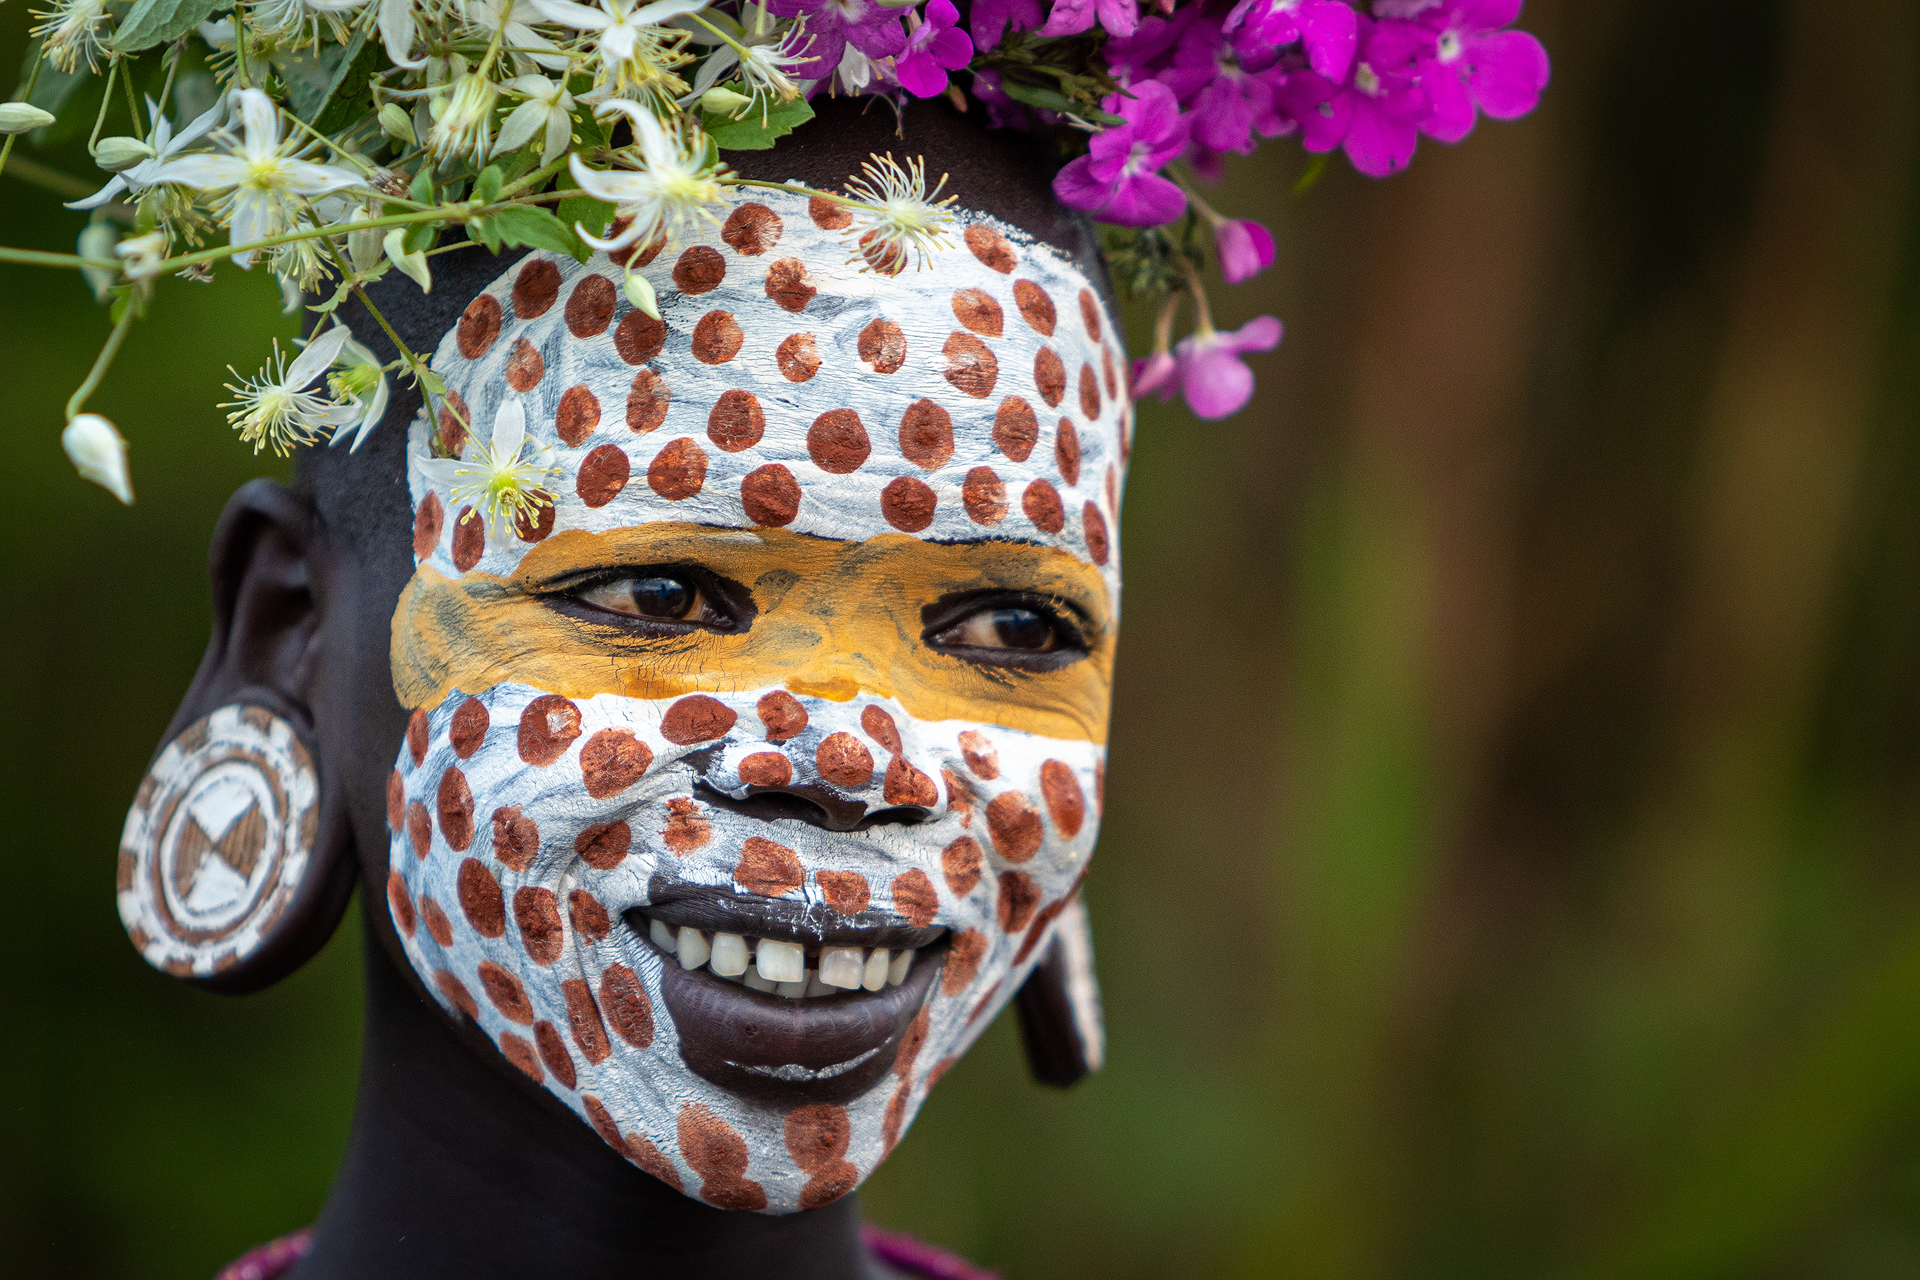 Girl with face paint smiling